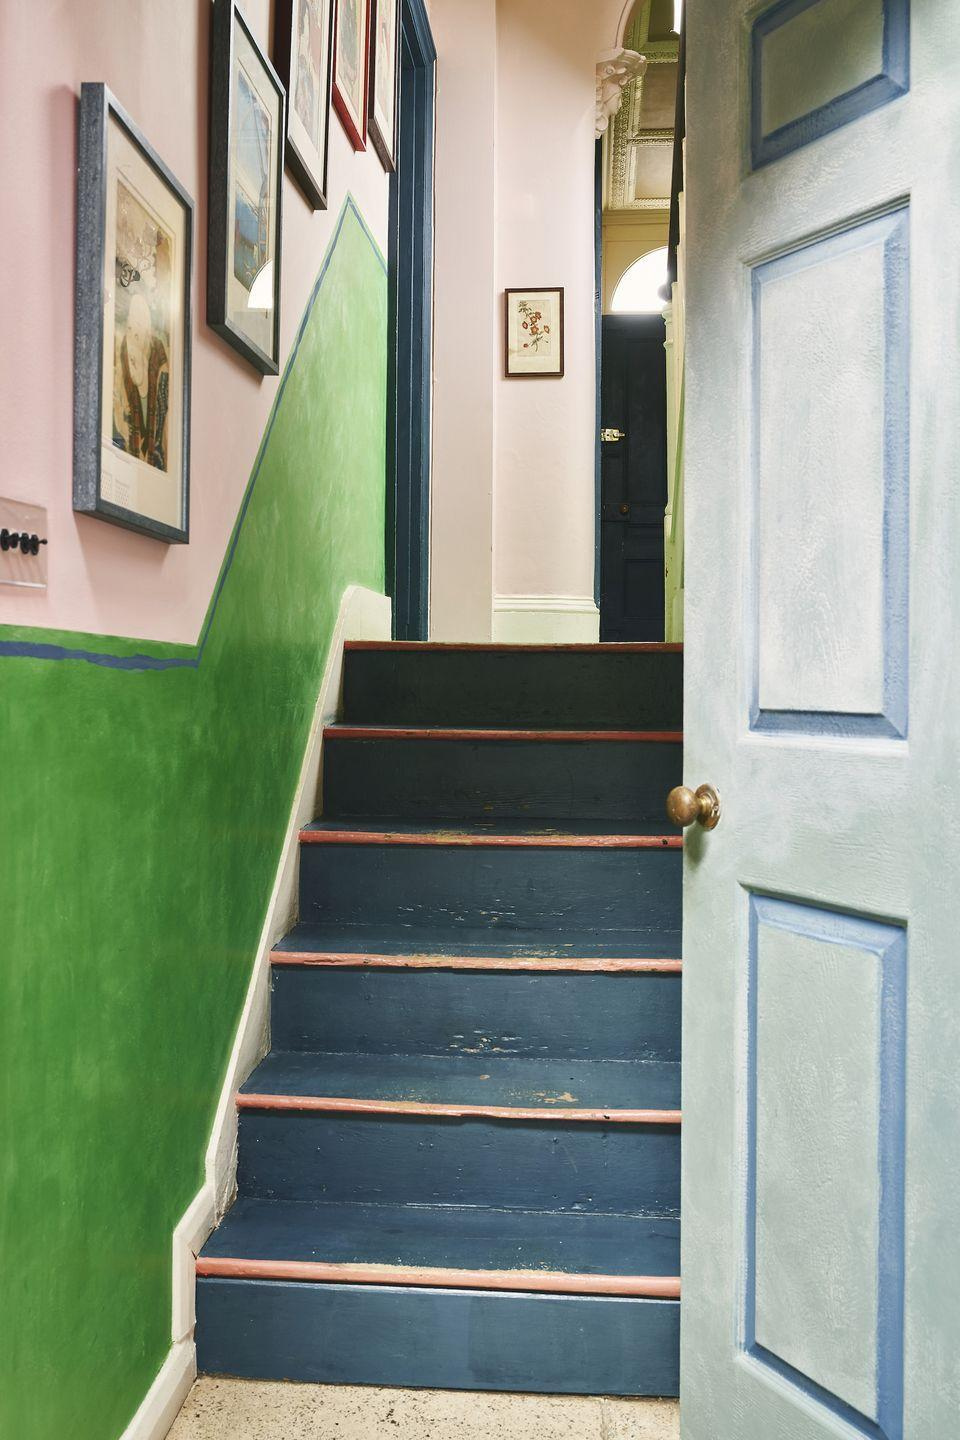 """<p>""""Painting lines to emphasize or even suggest panelling where there isn't any is a quick and easy way to add witty design flair to spaces,"""" says Sloan of her own entryway in her Oxford, England home. """"The stairs have also been painted with Scandinavian Pink because Cubans love a color clash and I wanted this hallway to sing with the colorful charm of Havana, along the runners, sanded back to suggest the romance of rusticity and faded grandeur, then lacquered with Matt Chalk Paint® Lacquer to protect.""""</p><p>The wall is painted in Antoinette and Antibes Green Chalk Paint®, the latter of which is waxed to ensure little hands don't scuff up the paint. The wall also features a thin blue line, painted Aubusson Blue, which matches the panels around the home's front door to create a seamless look.</p>"""